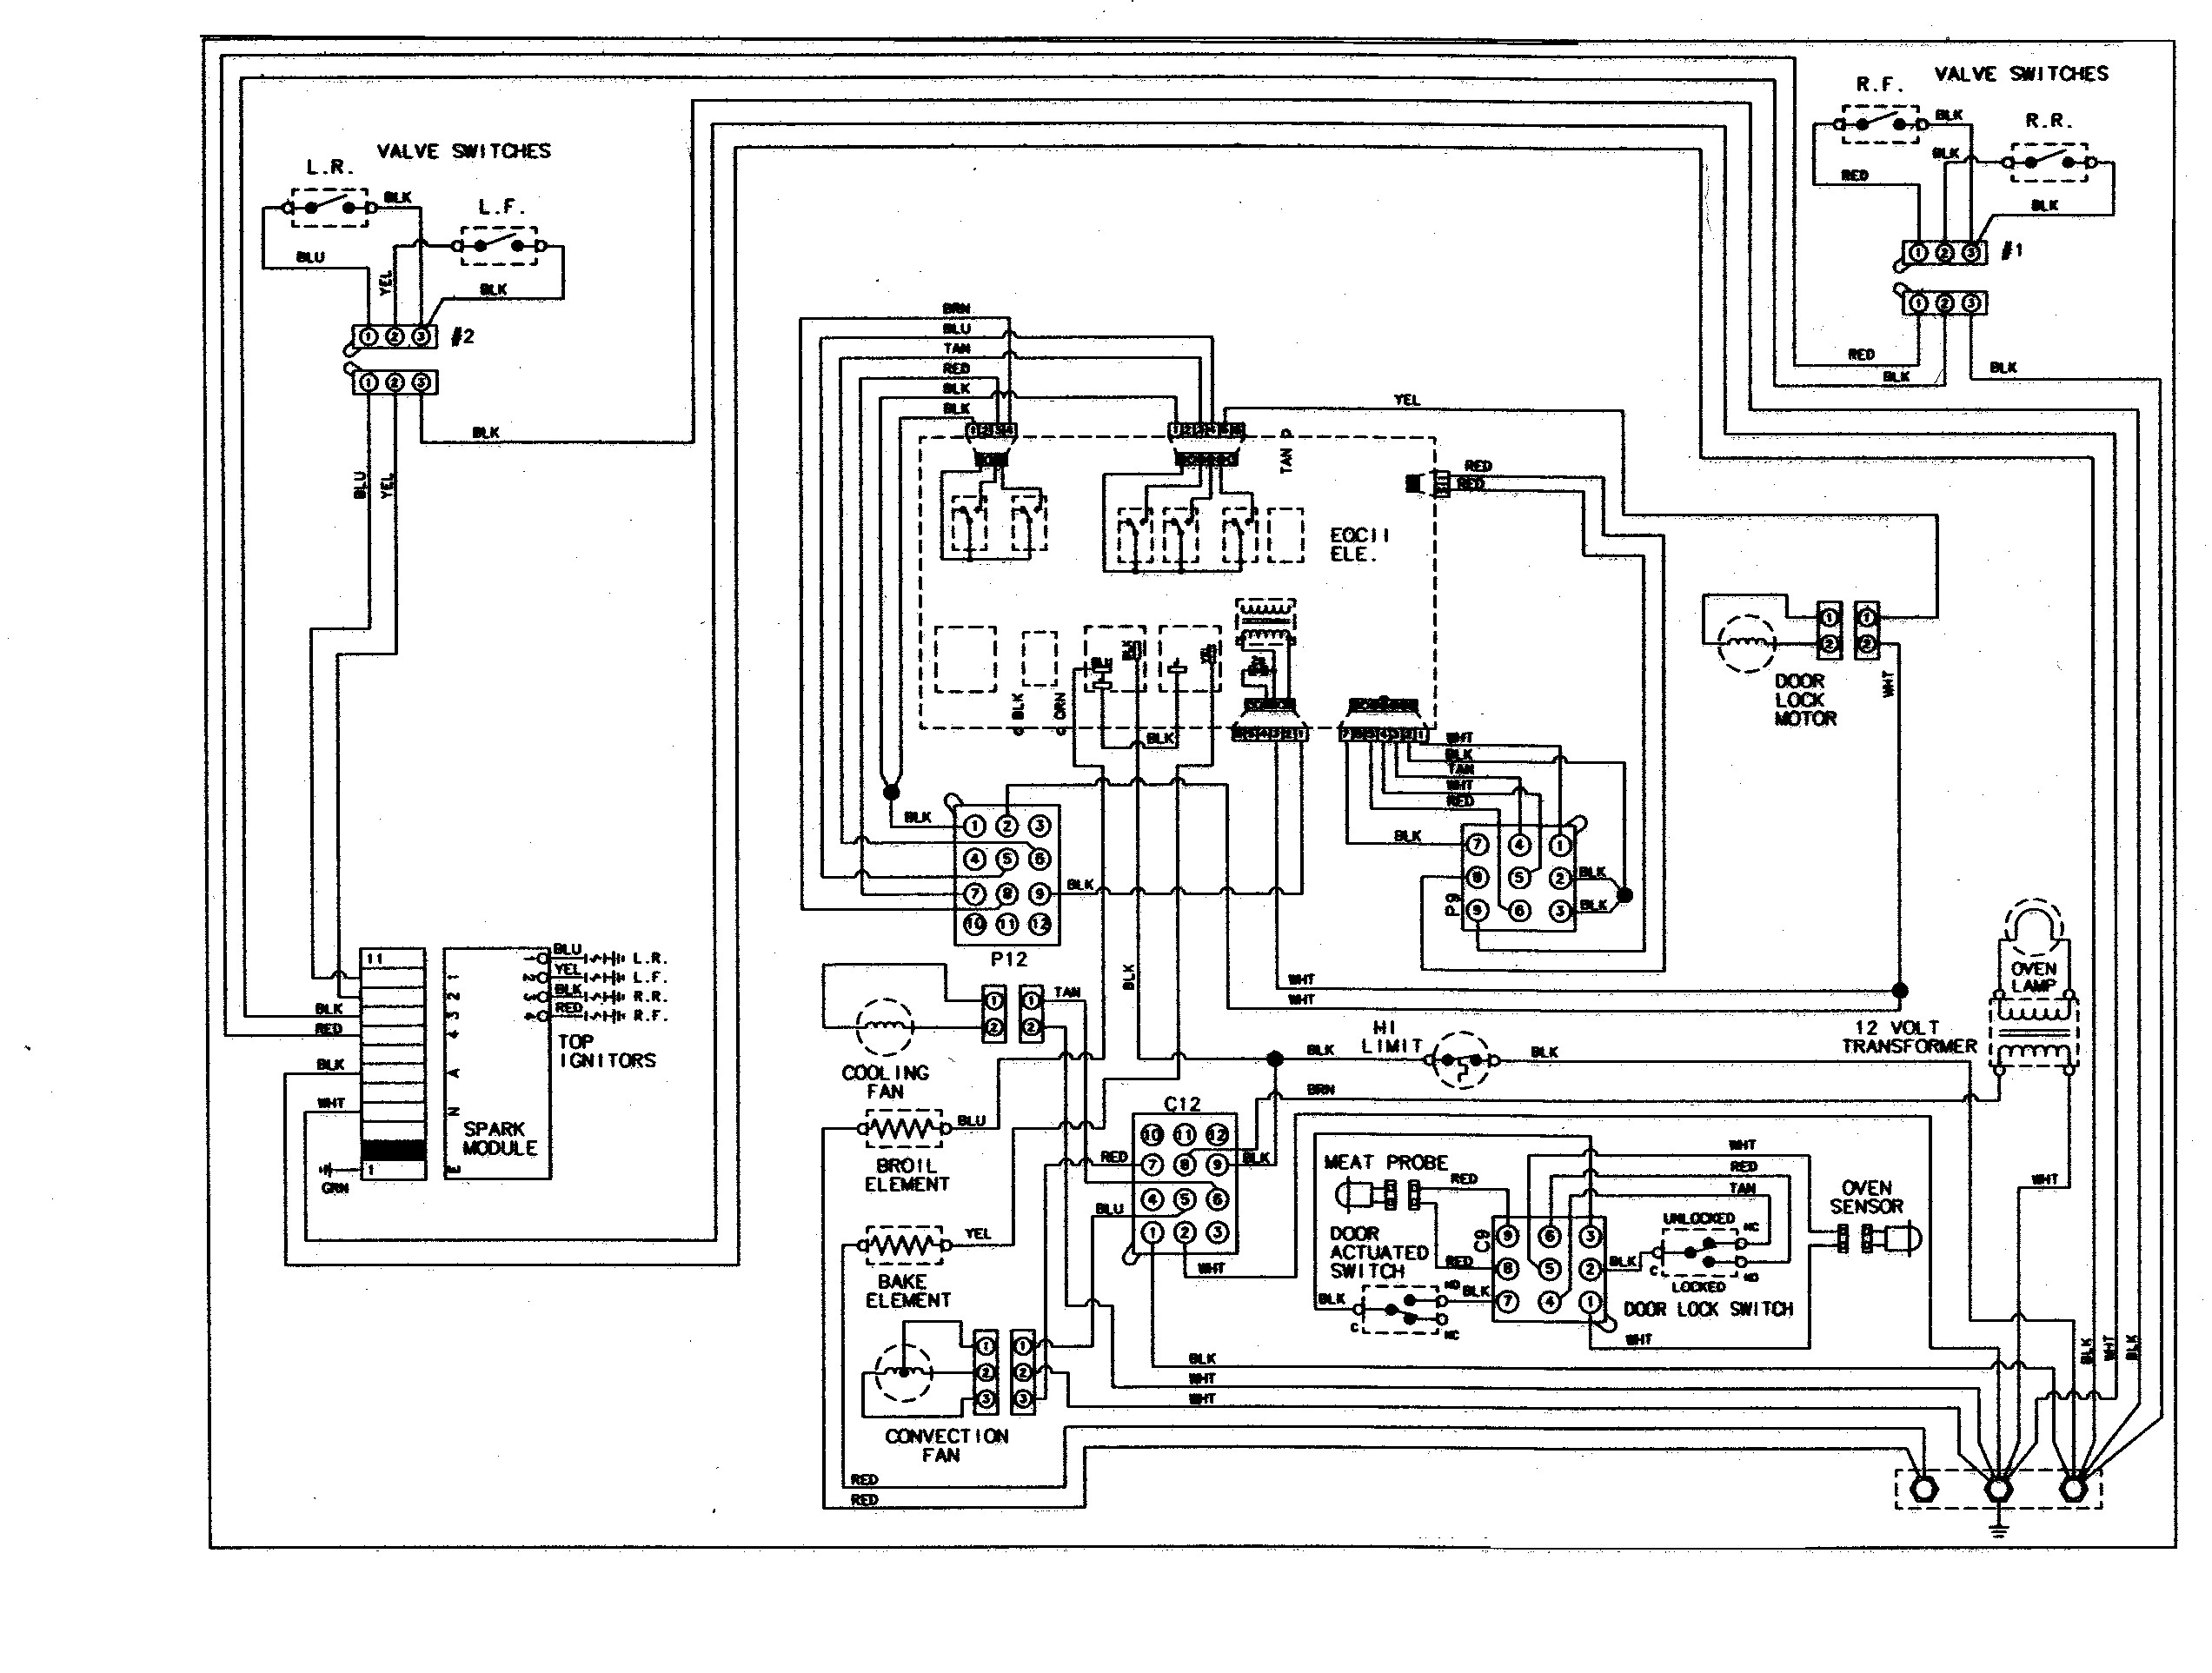 Ge Stove Wiring Diagram Experts Toaster Oven Switch On Schematic Diagrams For Microwave Image